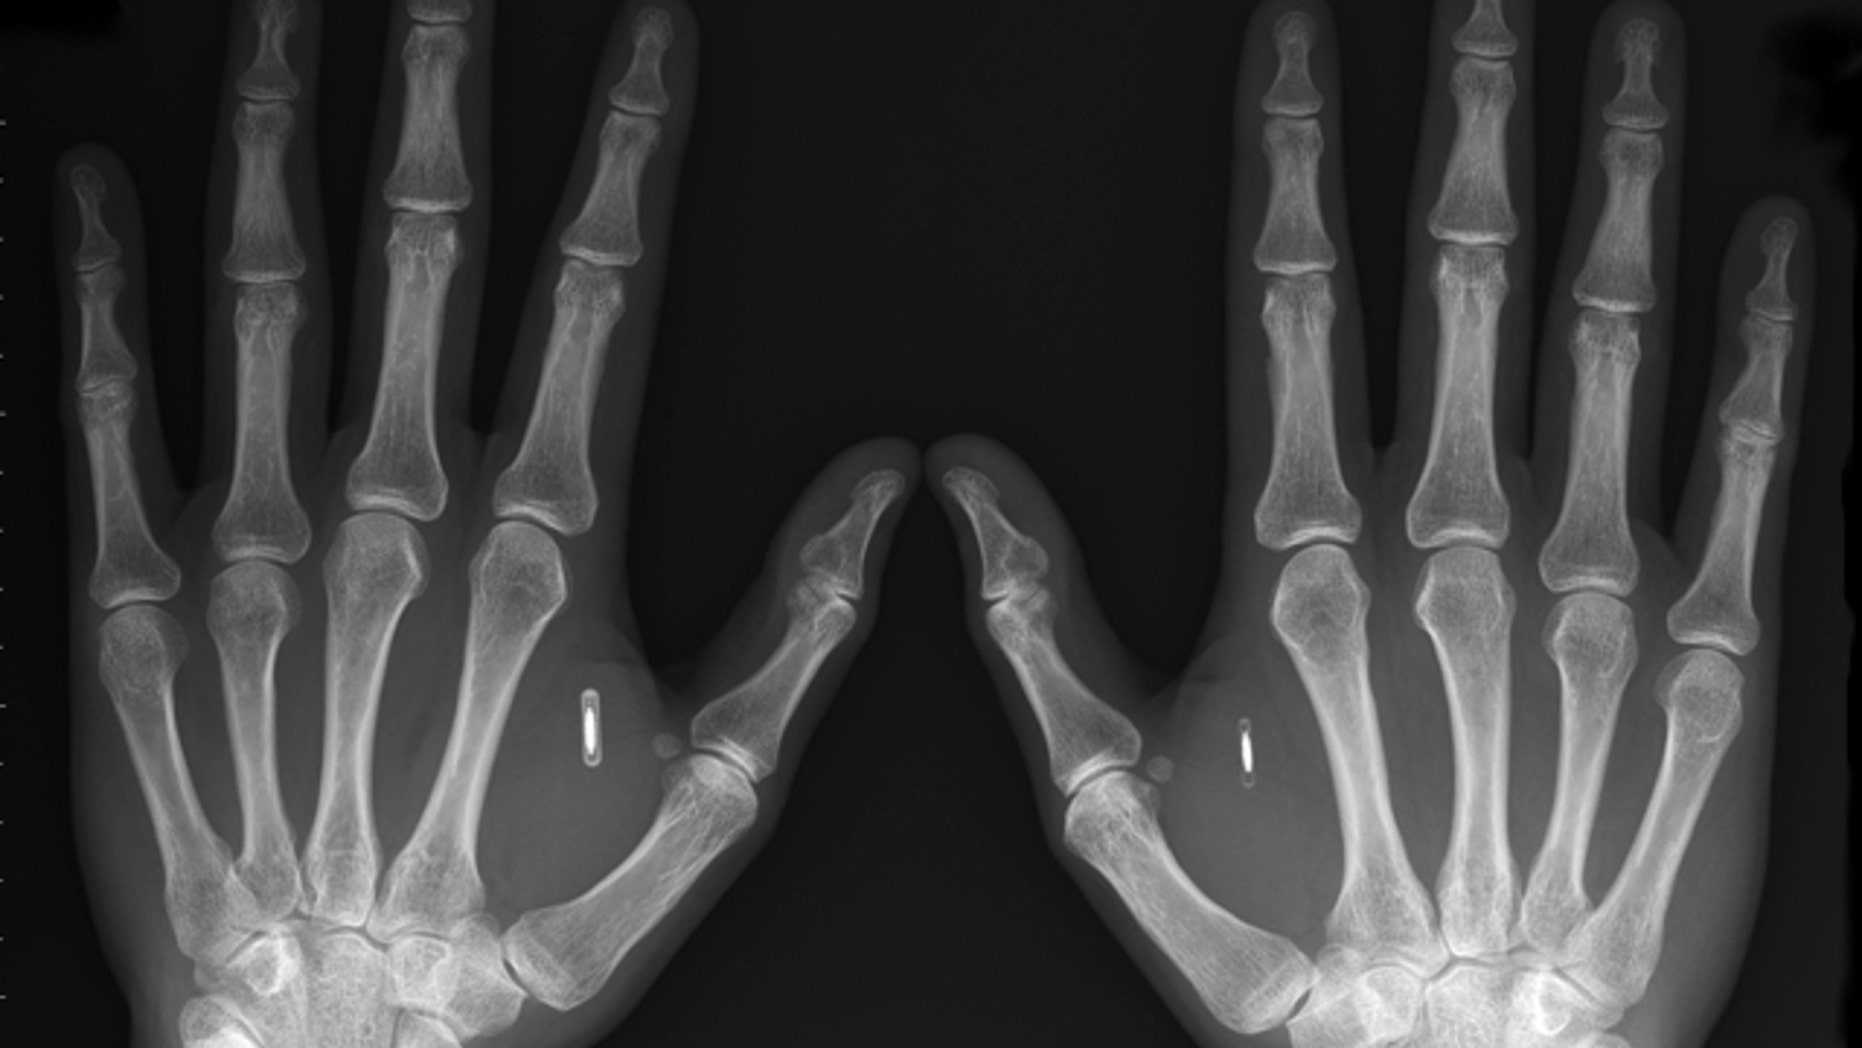 Tech enthusiasts and futurists think implantable radio chips, such as those embedded in Amal Graafstra's hands, could mean safety, security and convenience. But civil libertarians are concerned about privacy.